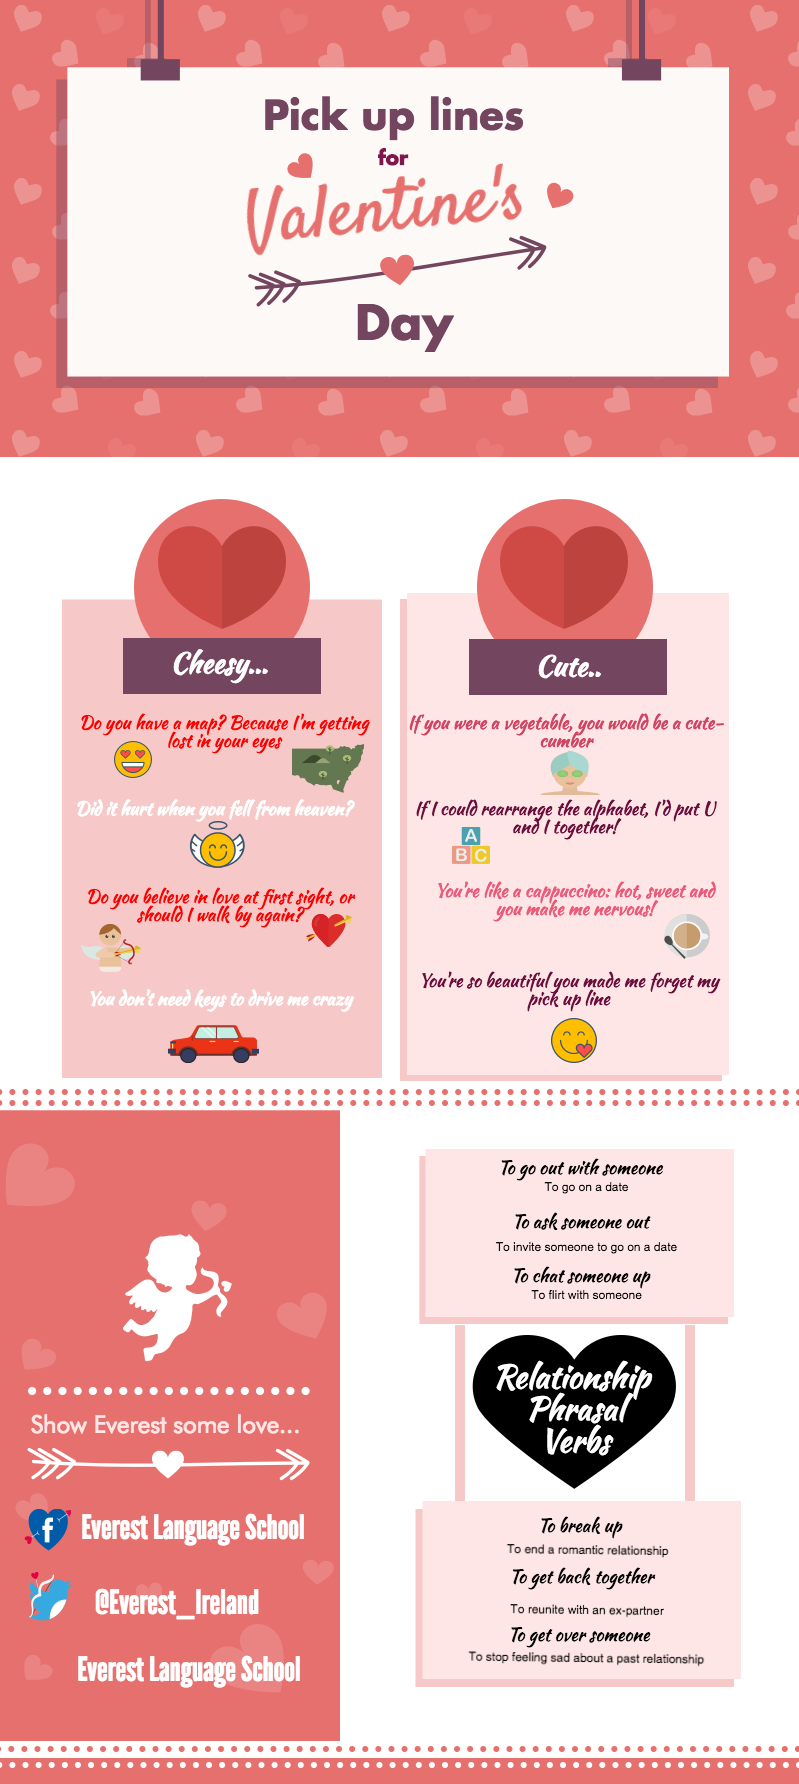 valentines day idioms phrasal verbs and pick up lines